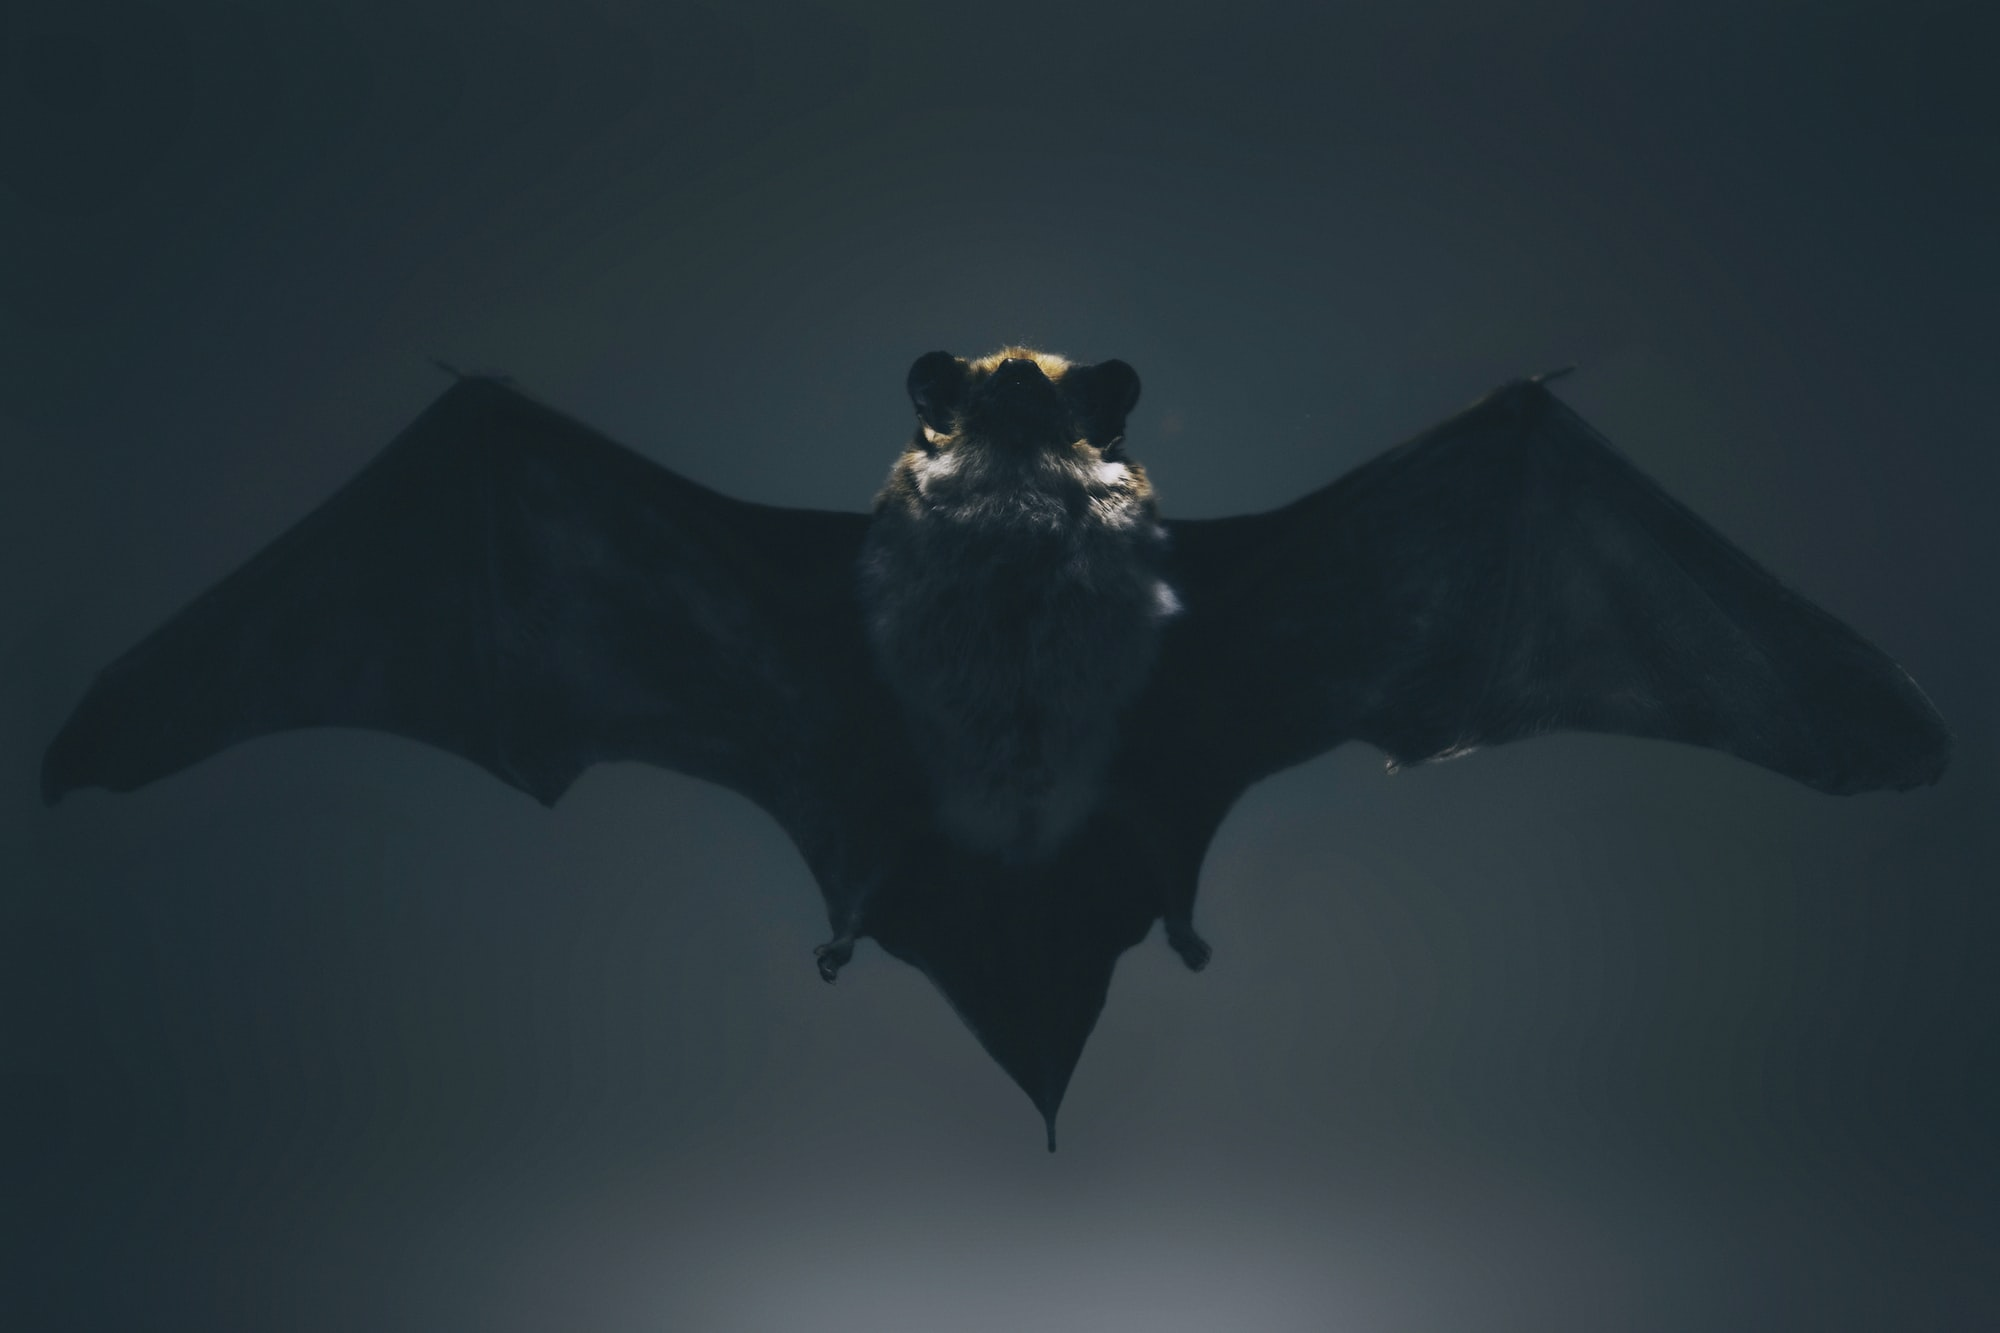 Vampires, werewolves, & the Toyota Production System